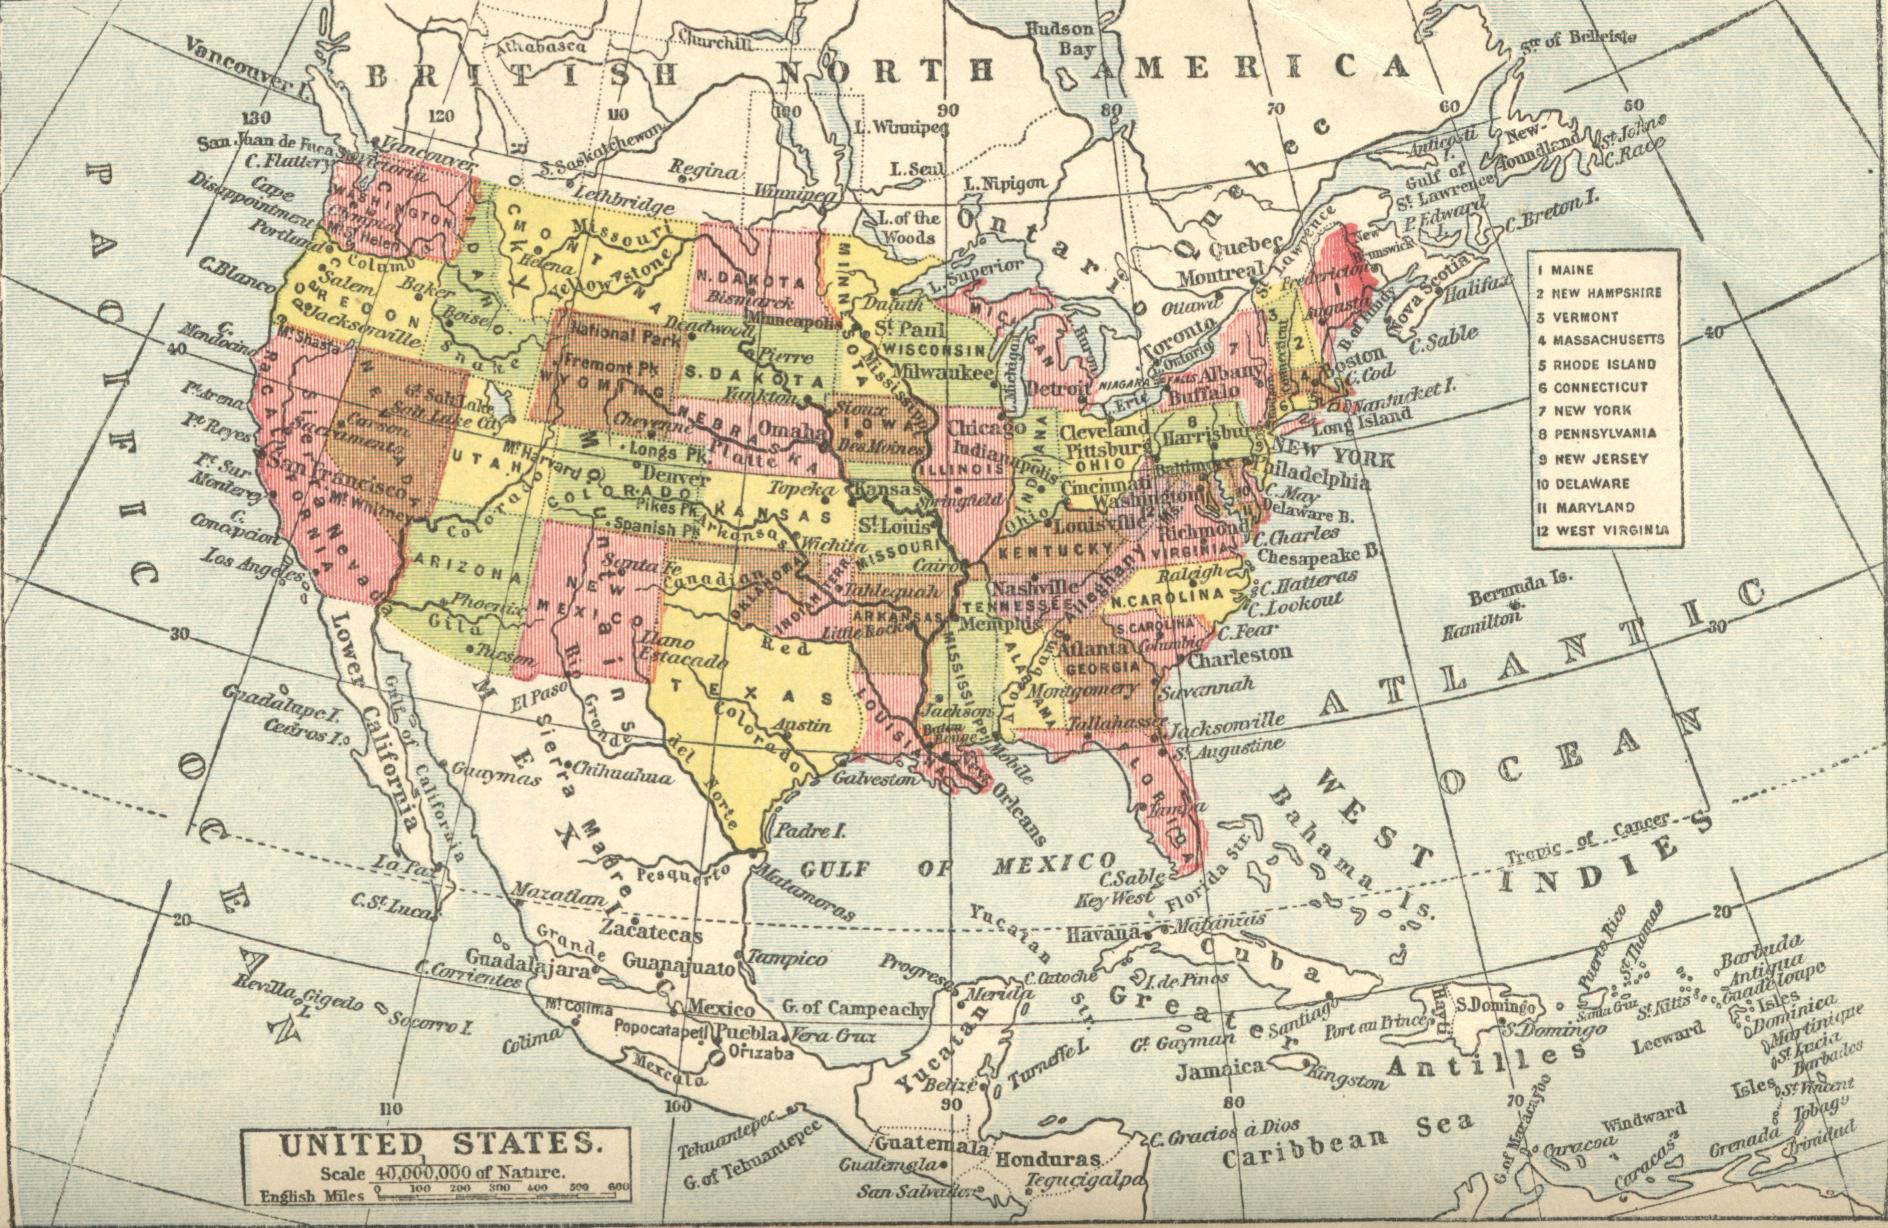 Map Of The United States Of America Also Showing Much Of Canada - Physical features of canada and the united states